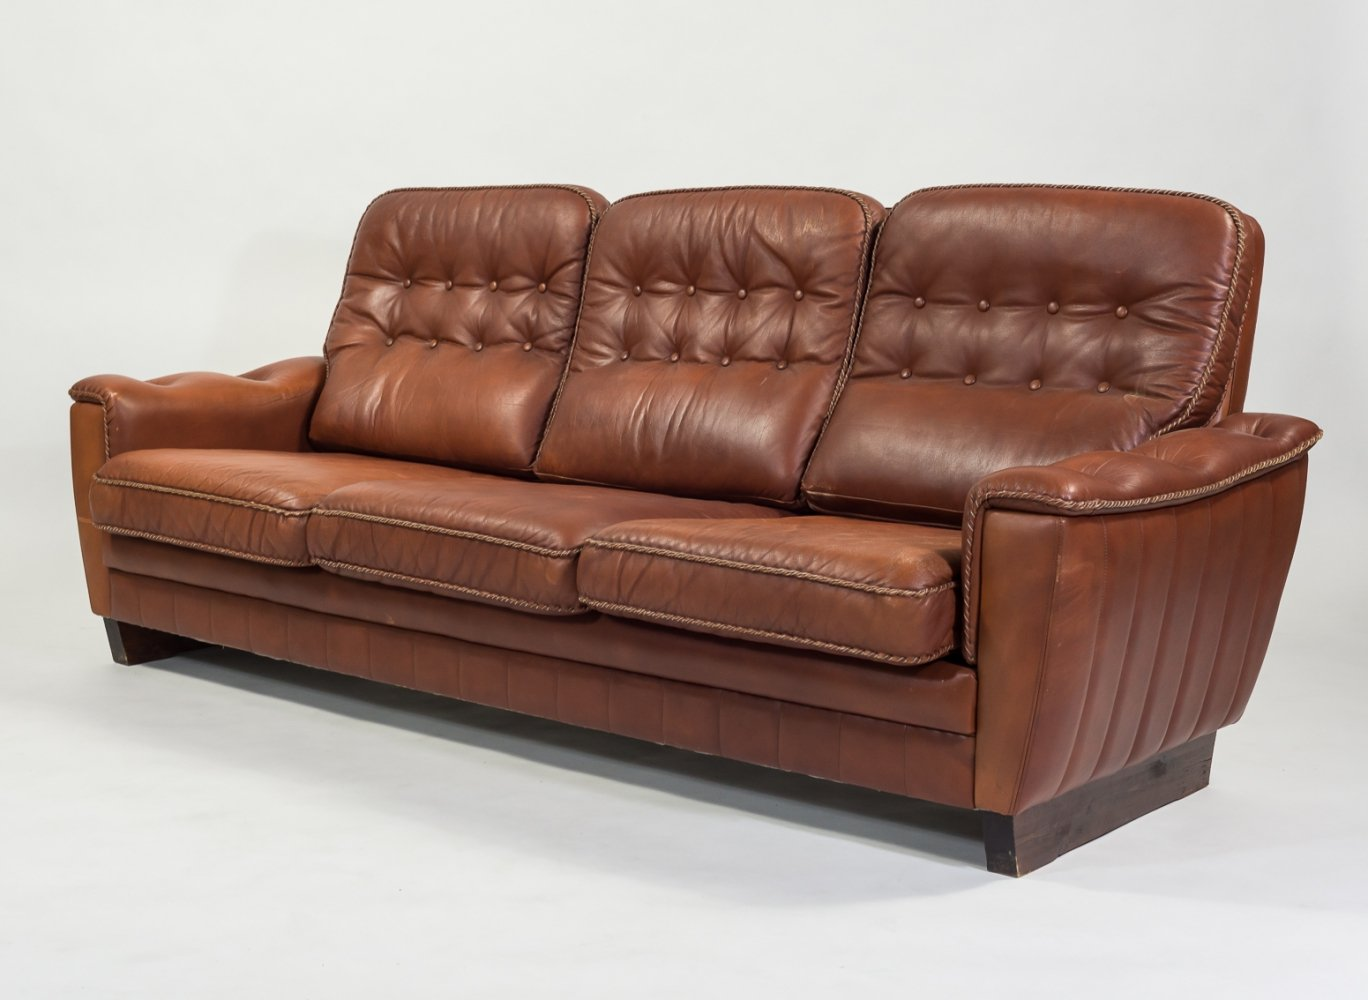 Danish three seats vintage sofa in dark cognac leather